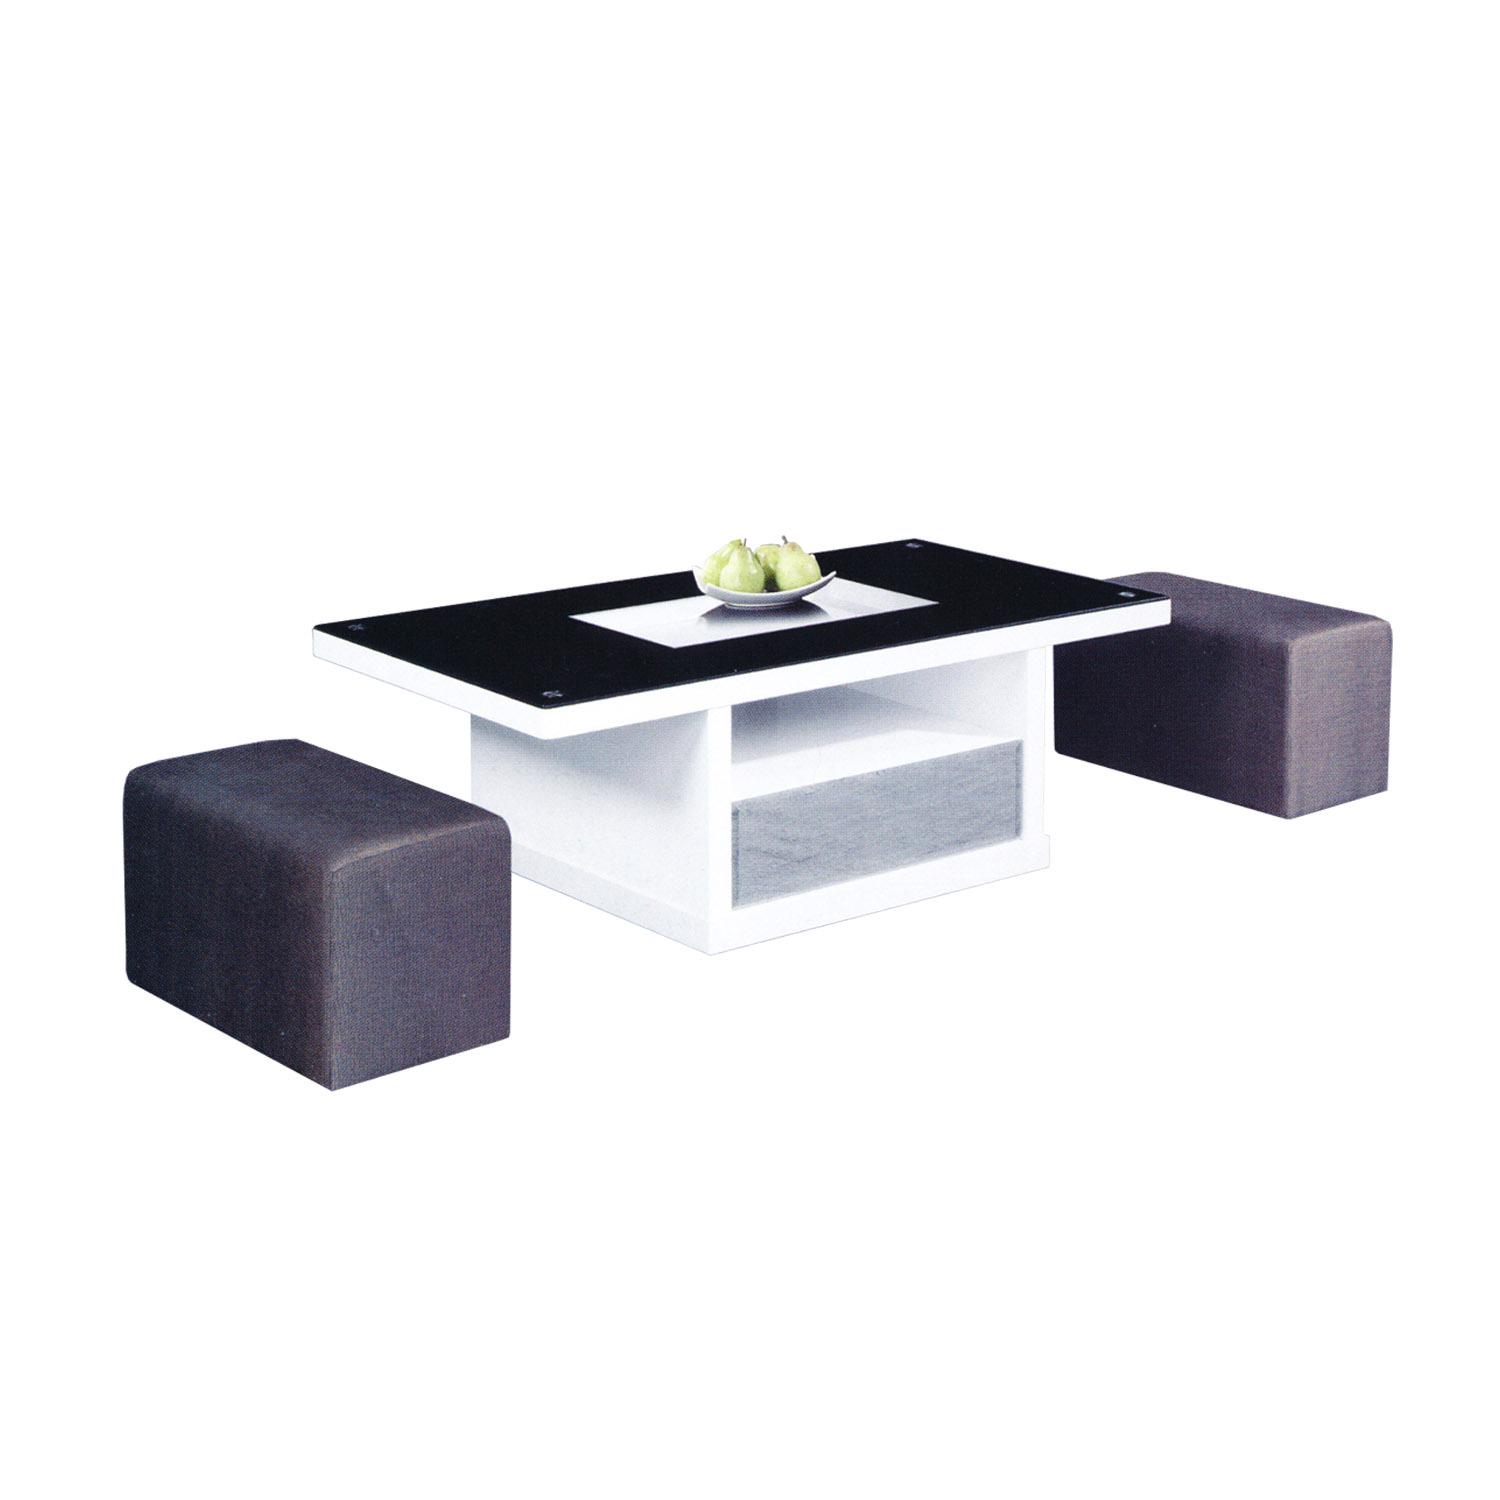 LIVING MALL_Firaz 2 Coffee Table + Tool_FREE DELIVERY